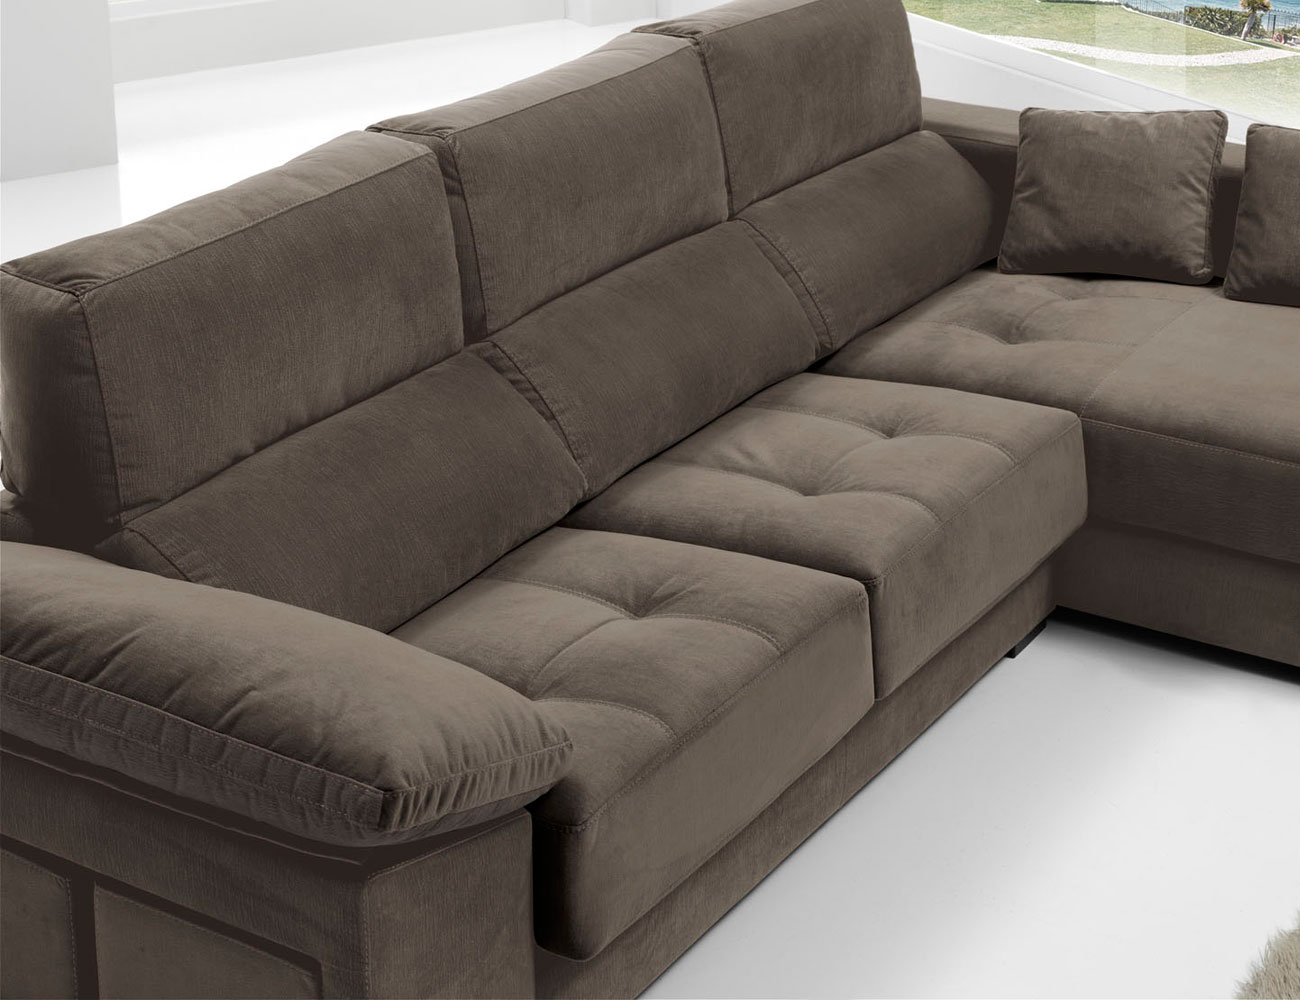 Sofa chaiselongue anti manchas bering pouf 222